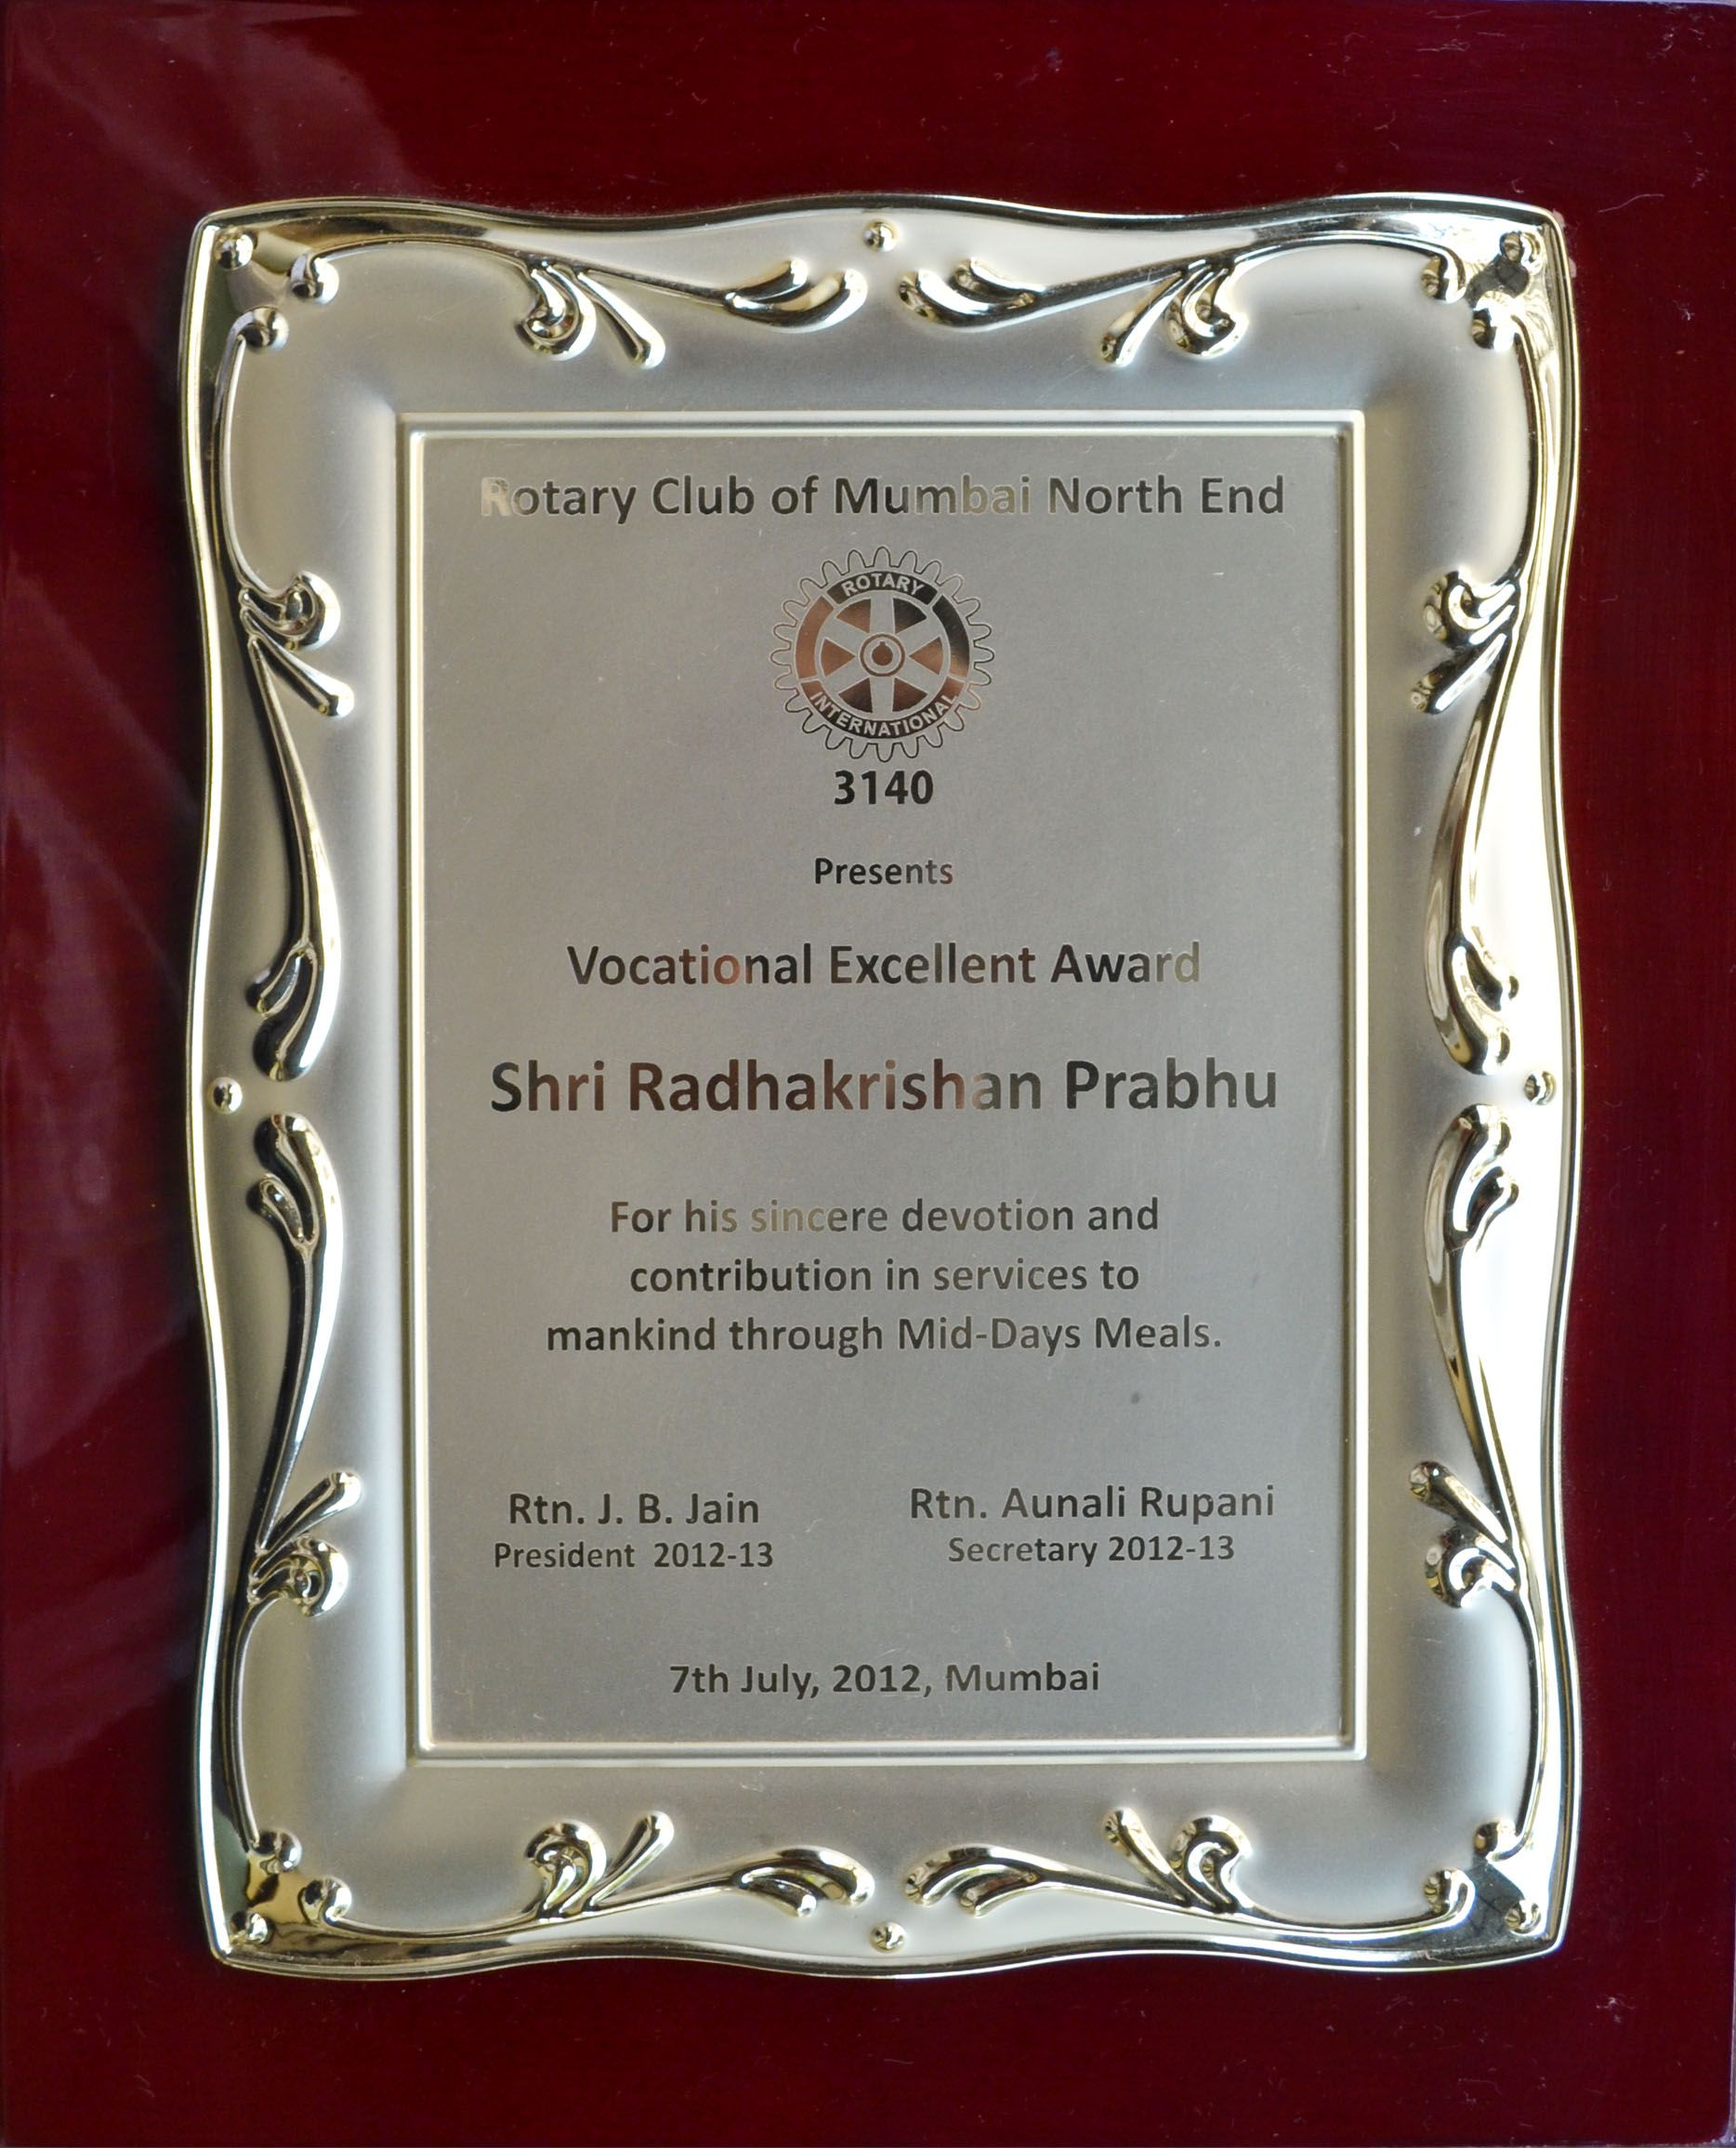 Rotary Club Presents Vocational Excellence Award To Dr Radha Krishna Das For His Services To Society Through Midday Rotary Club Excellence Award Appreciation Rotary certificate of appreciation template